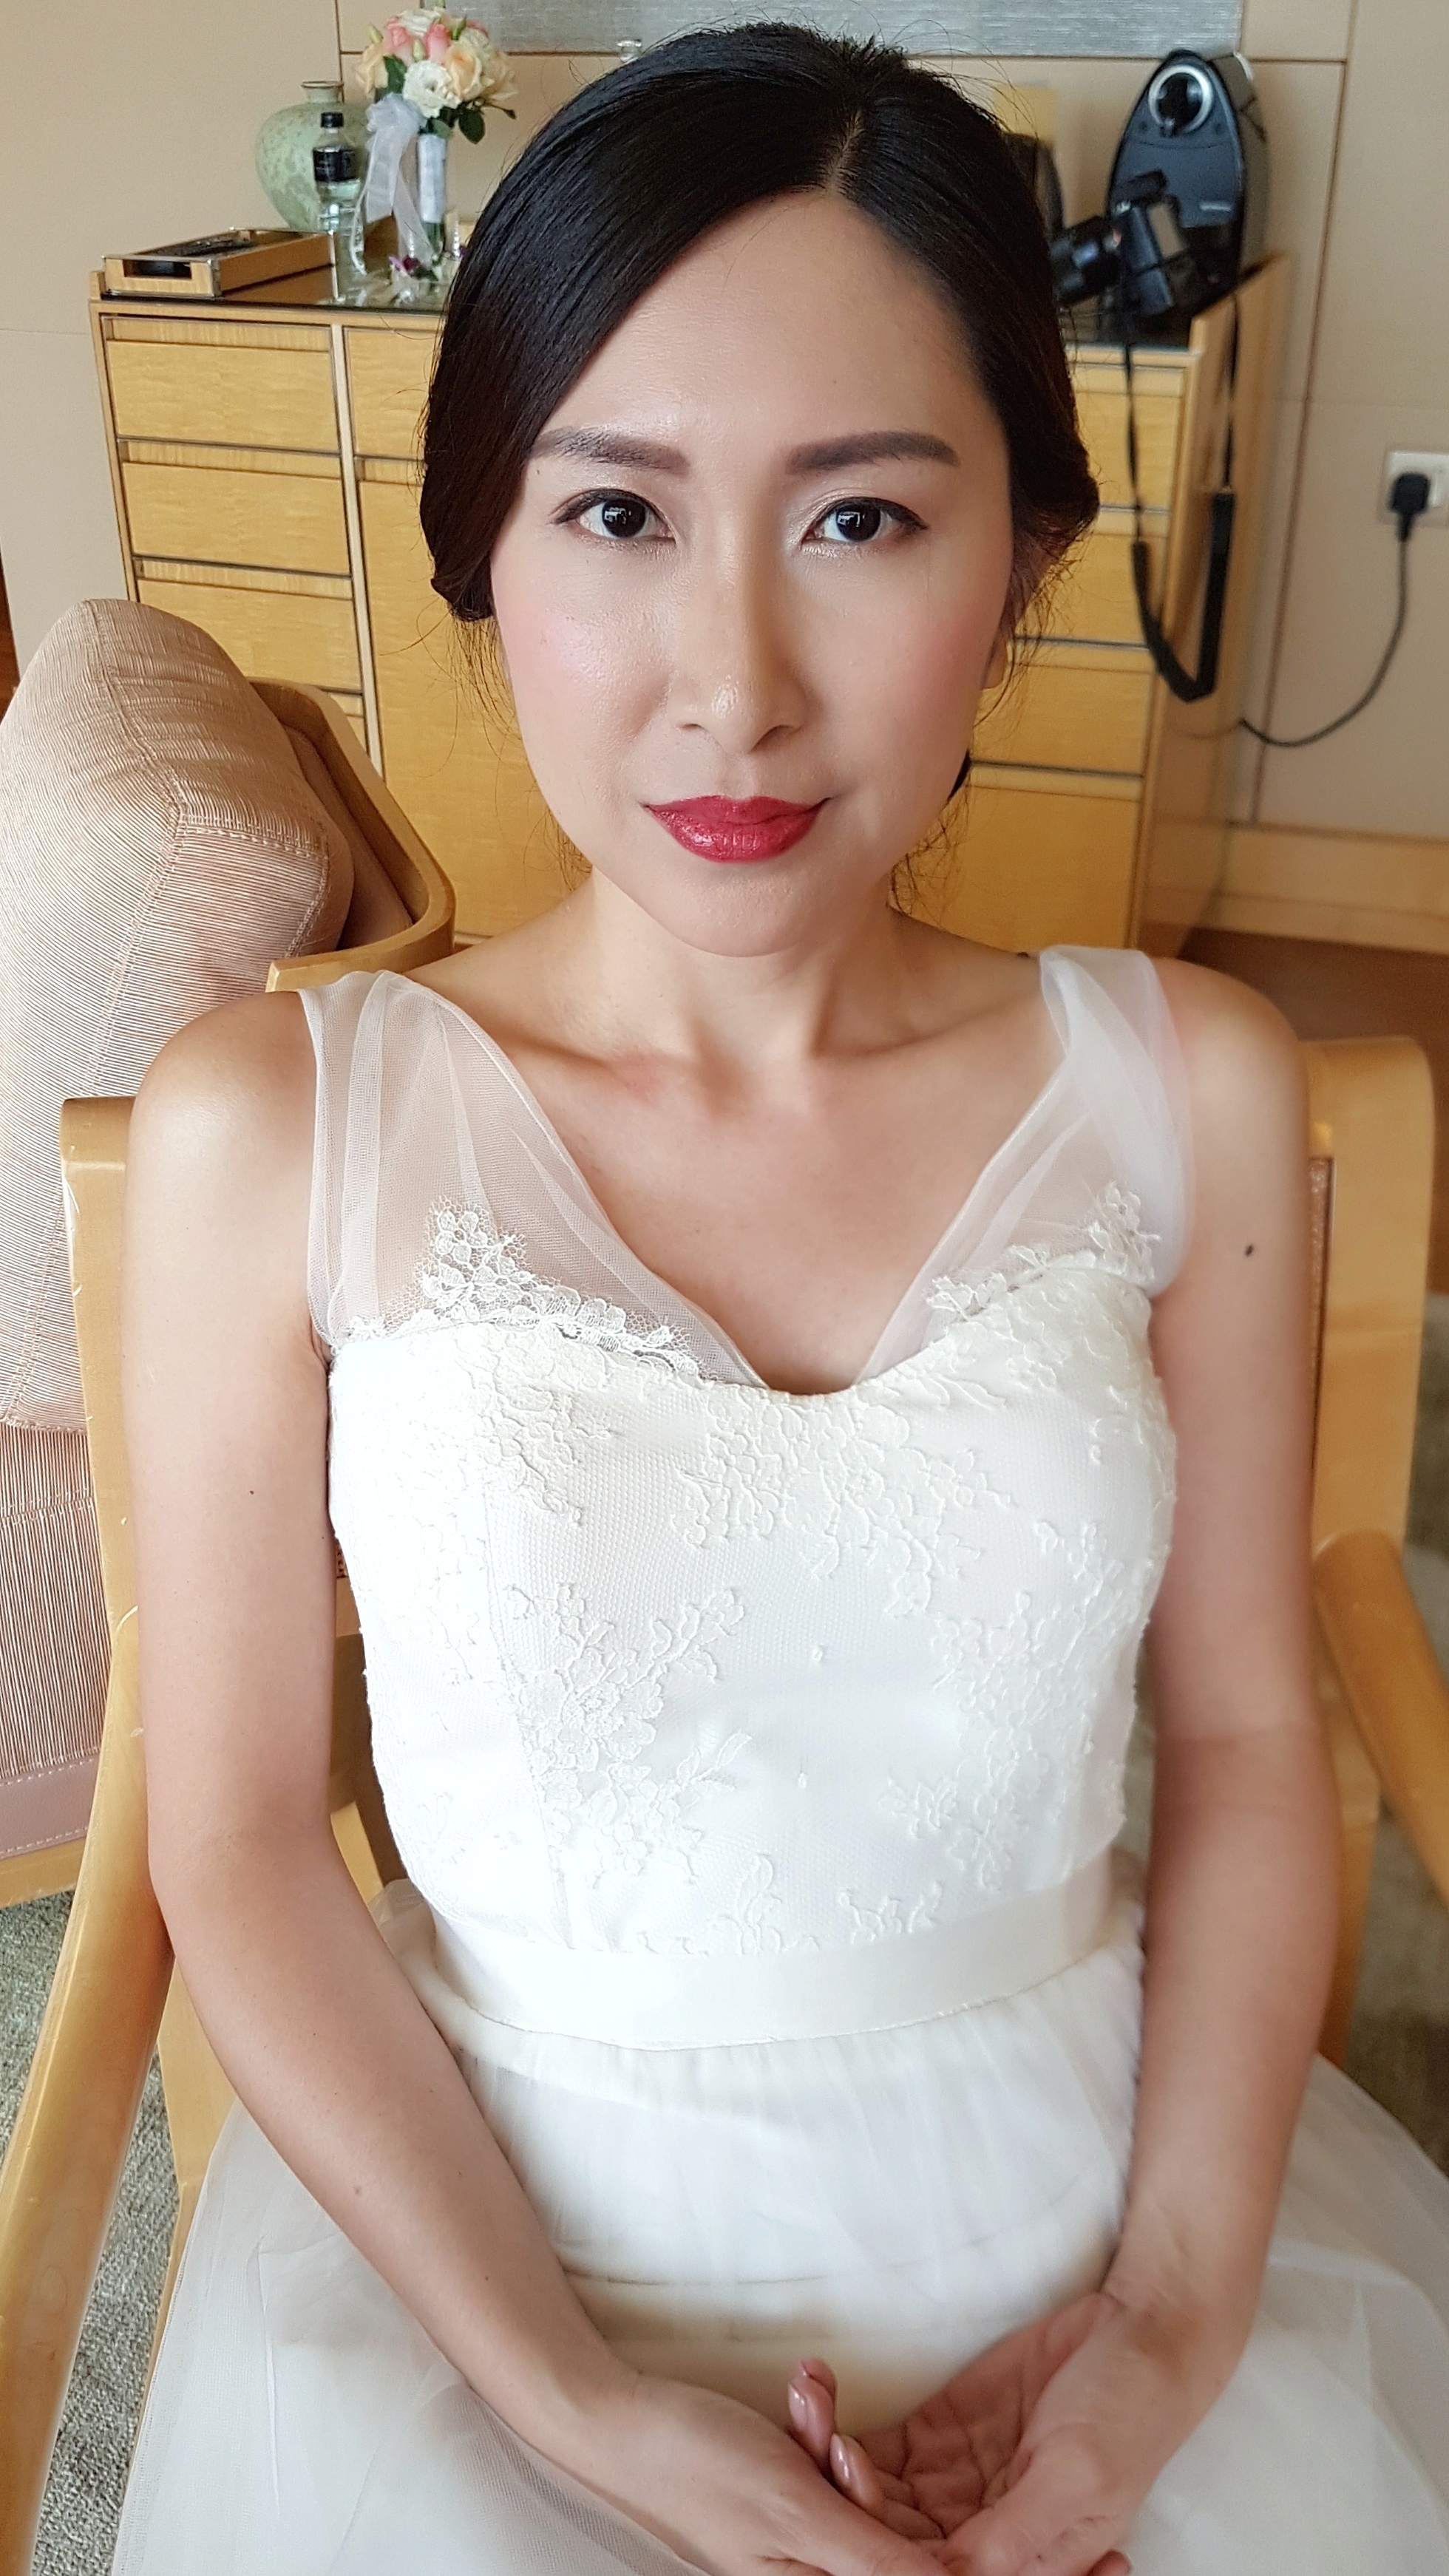 Makeup Refinery Bridal Wedding Bride Makeup 1